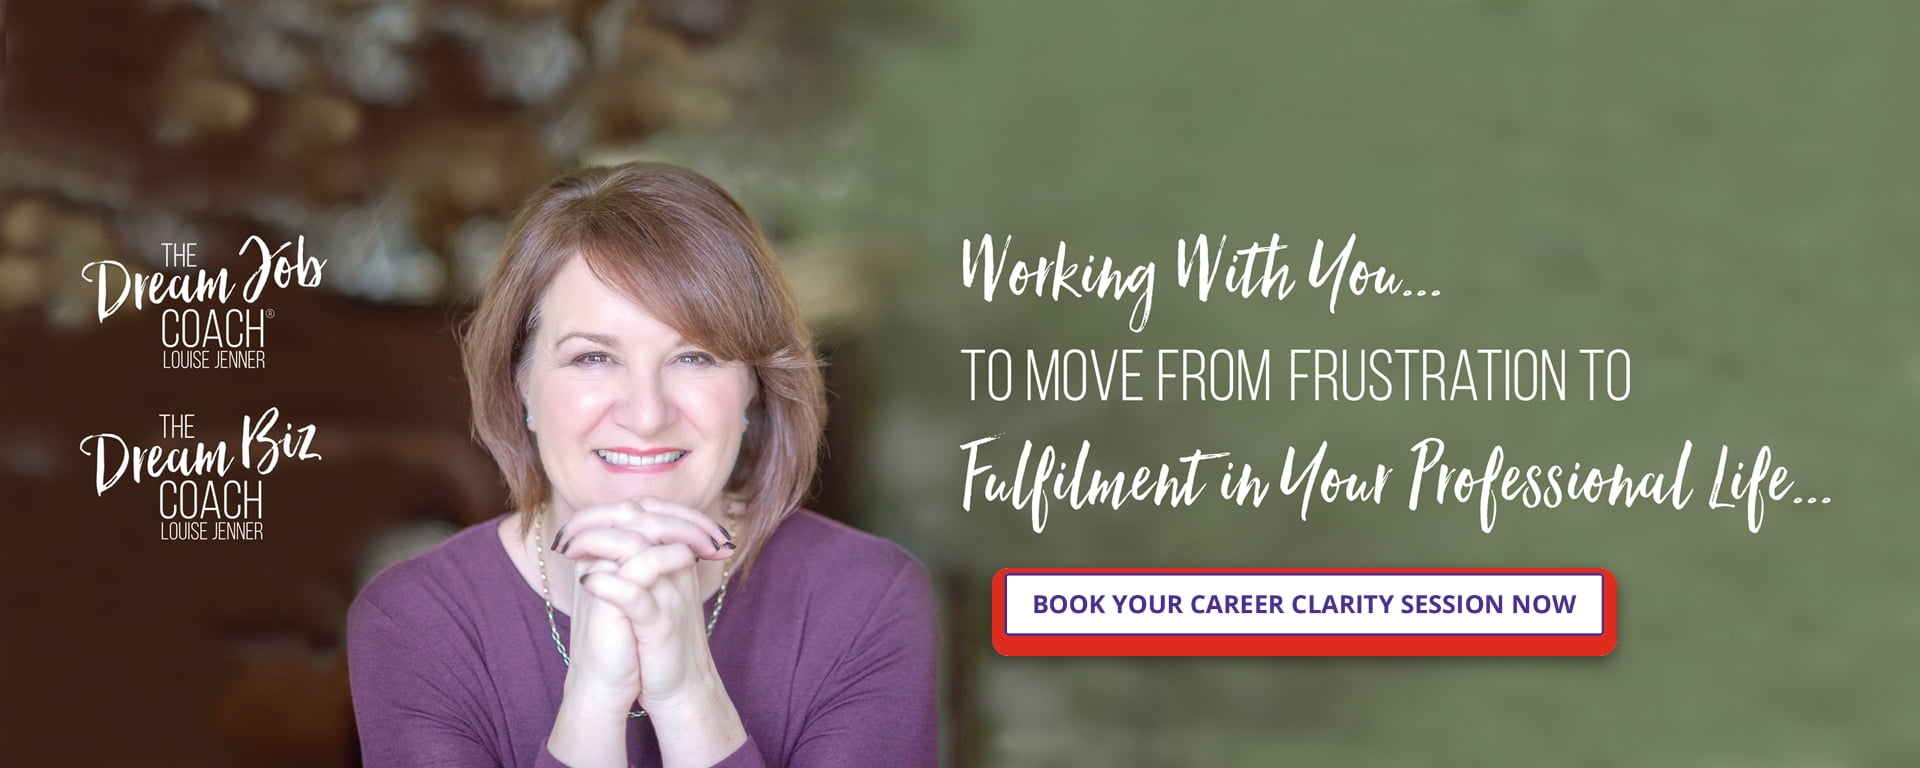 Louise Jenner, The Dream Job Coach, The Dream Biz Coach - Career Coach and Business Coach - Gloucester - Working with you to move from frustration to fulfilment in your professional life.